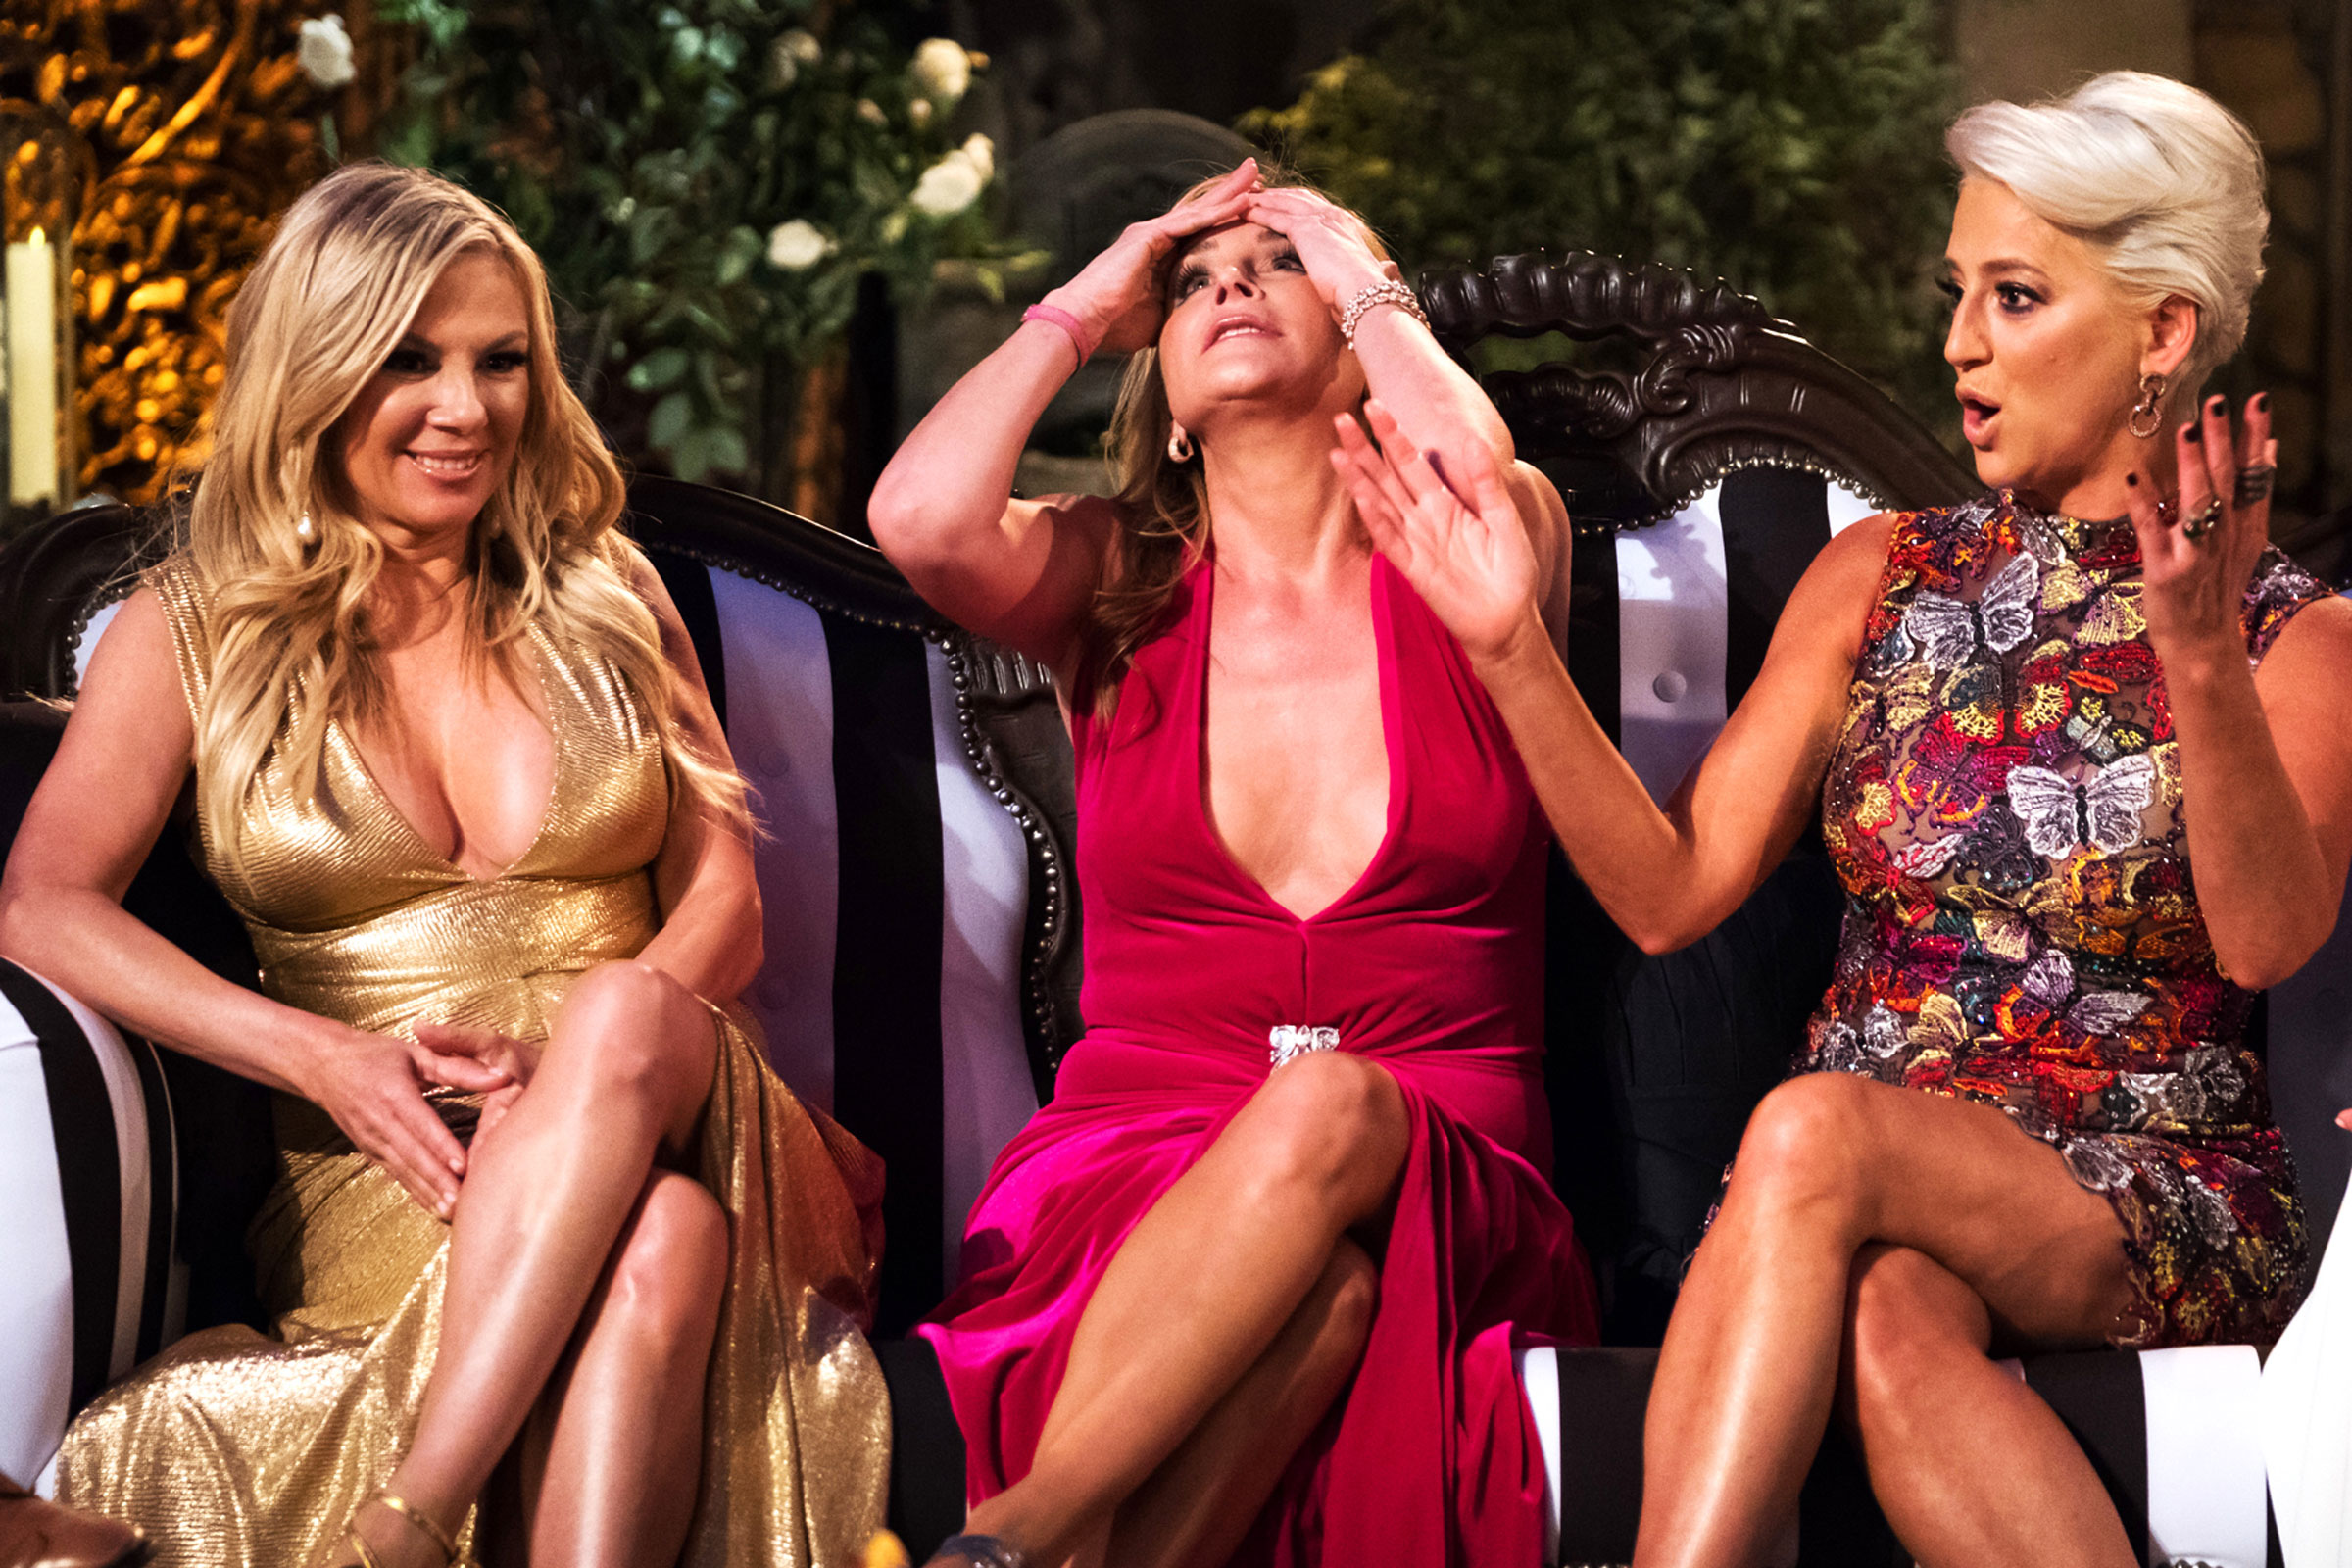 Three rich looking white women wearing fancy dresses who all have blond hair and are arguing and looking stressed.